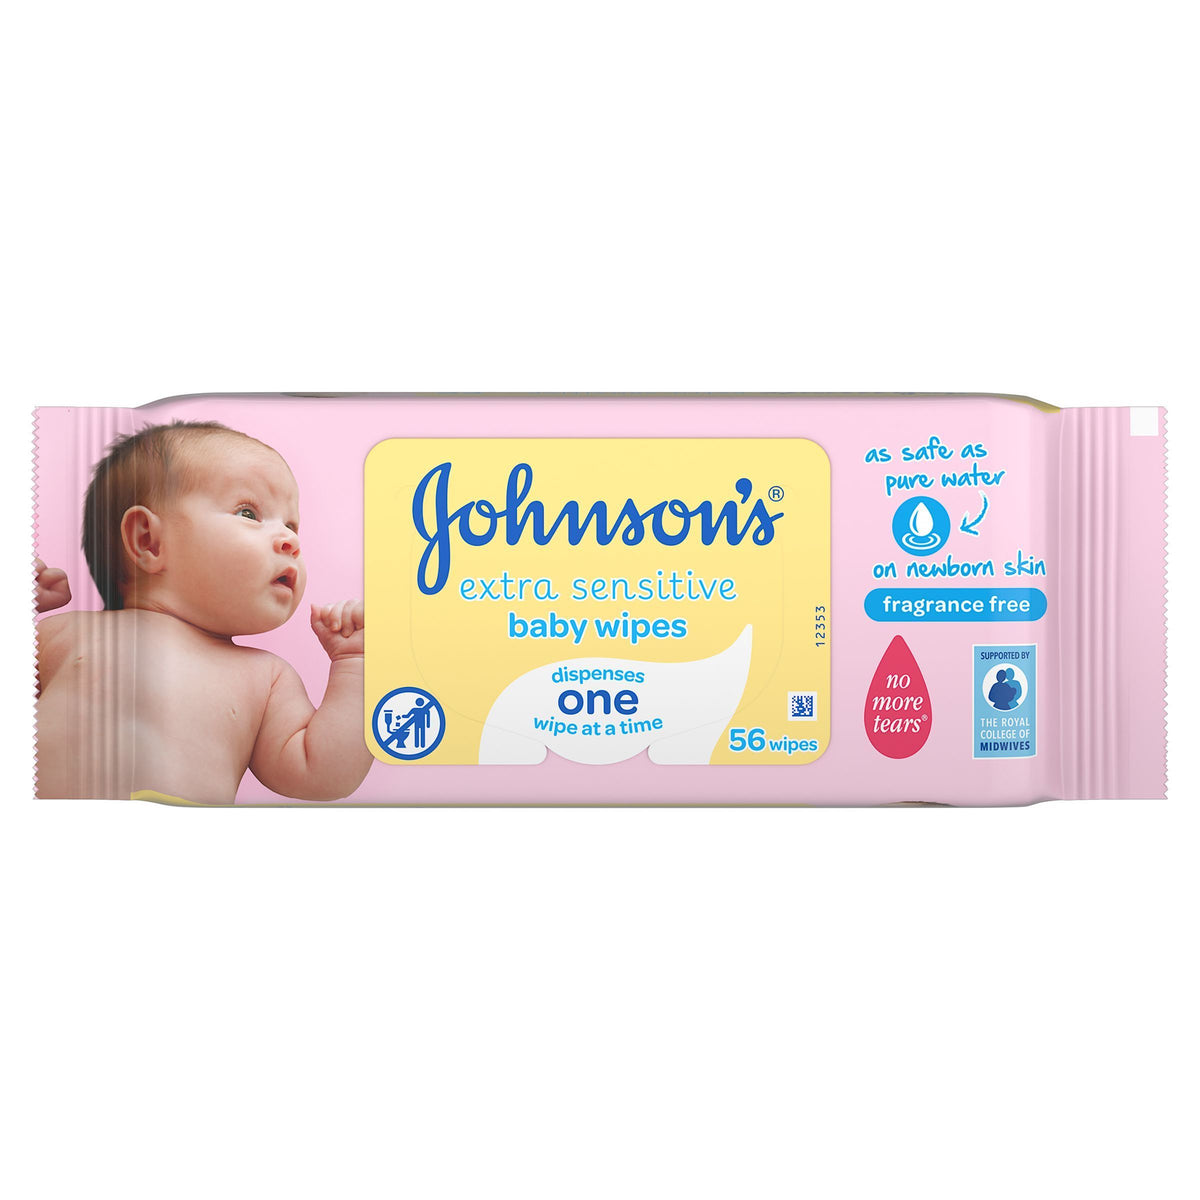 Johnson's Baby Extra Sensitive Wipes - 12 Packs of 56 Wipes per Pack